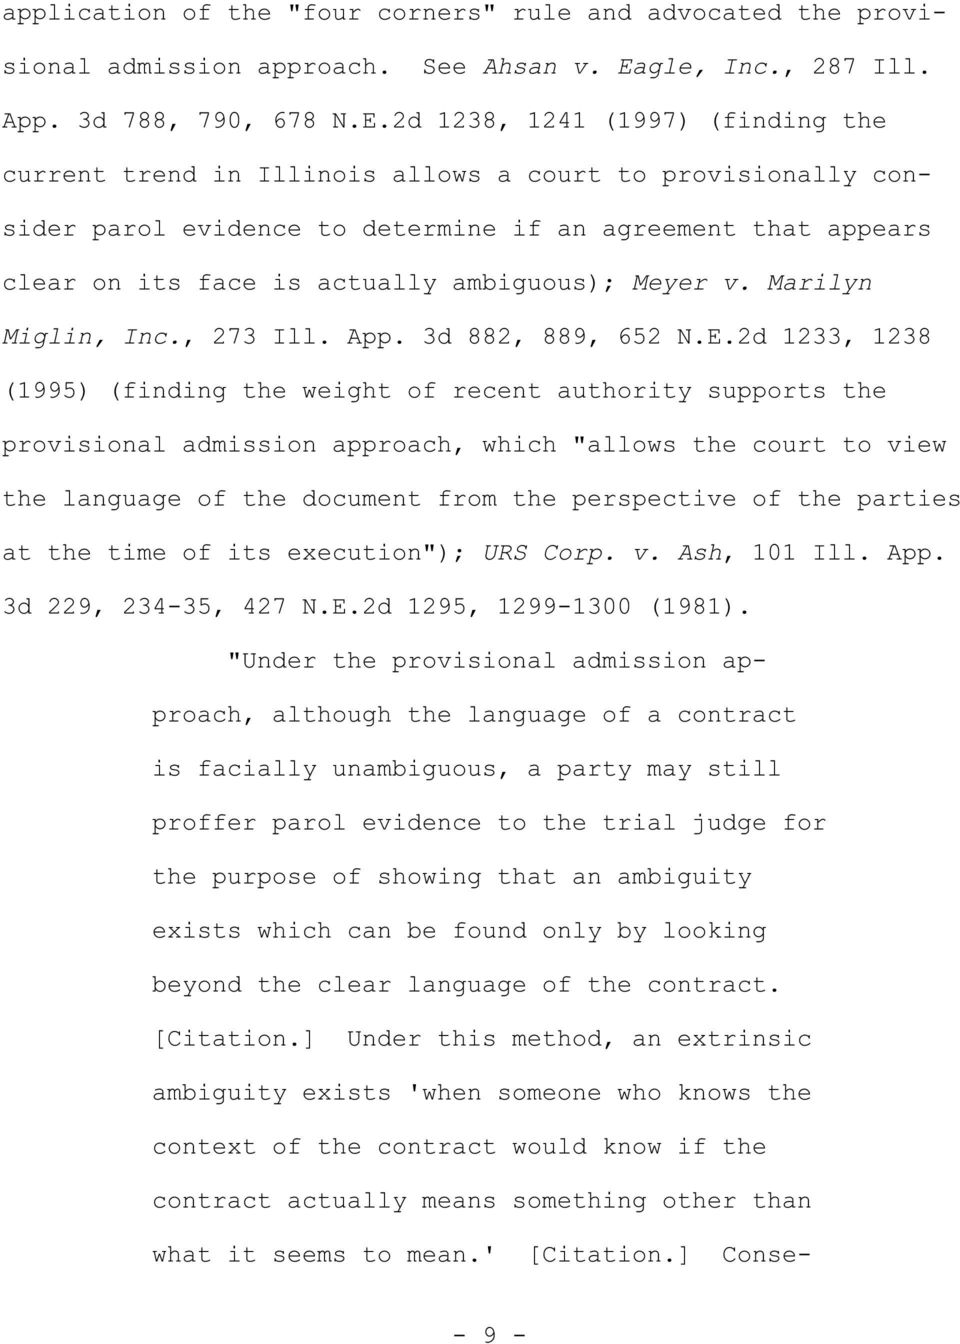 2d 1238, 1241 (1997 (finding the current trend in Illinois allows a court to provisionally consider parol evidence to determine if an agreement that appears clear on its face is actually ambiguous;